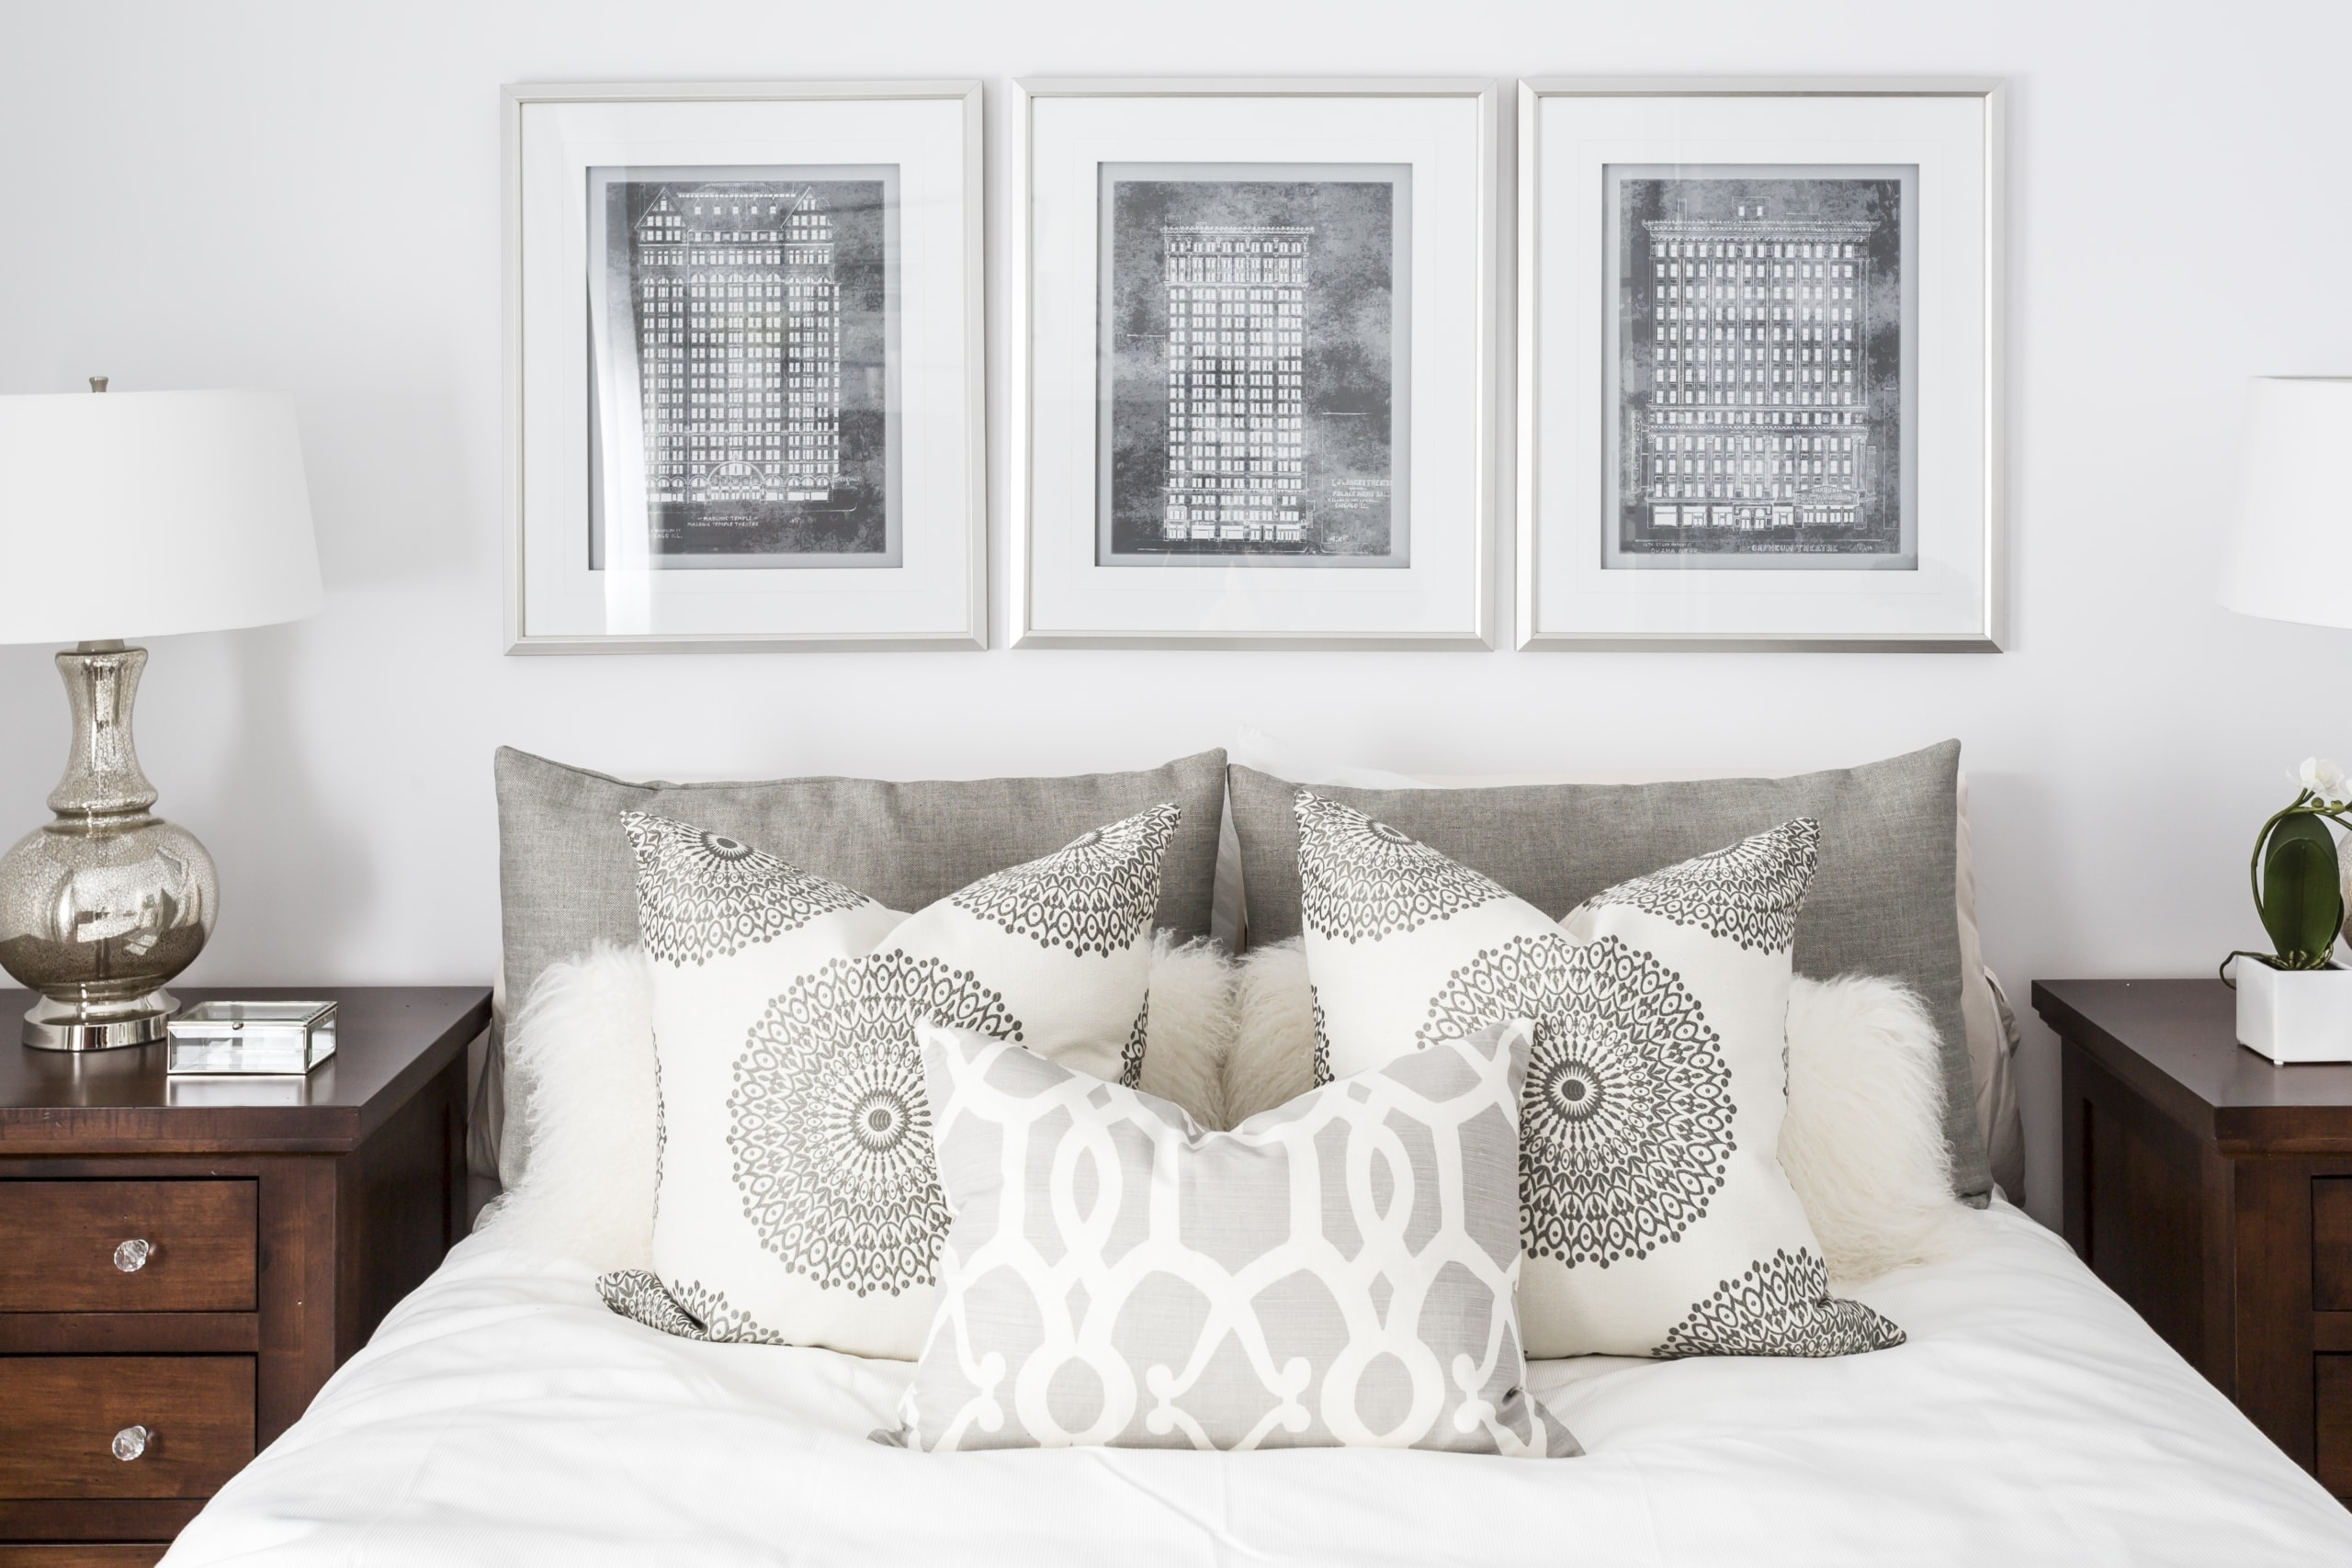 Large bed with three similar pictures above it